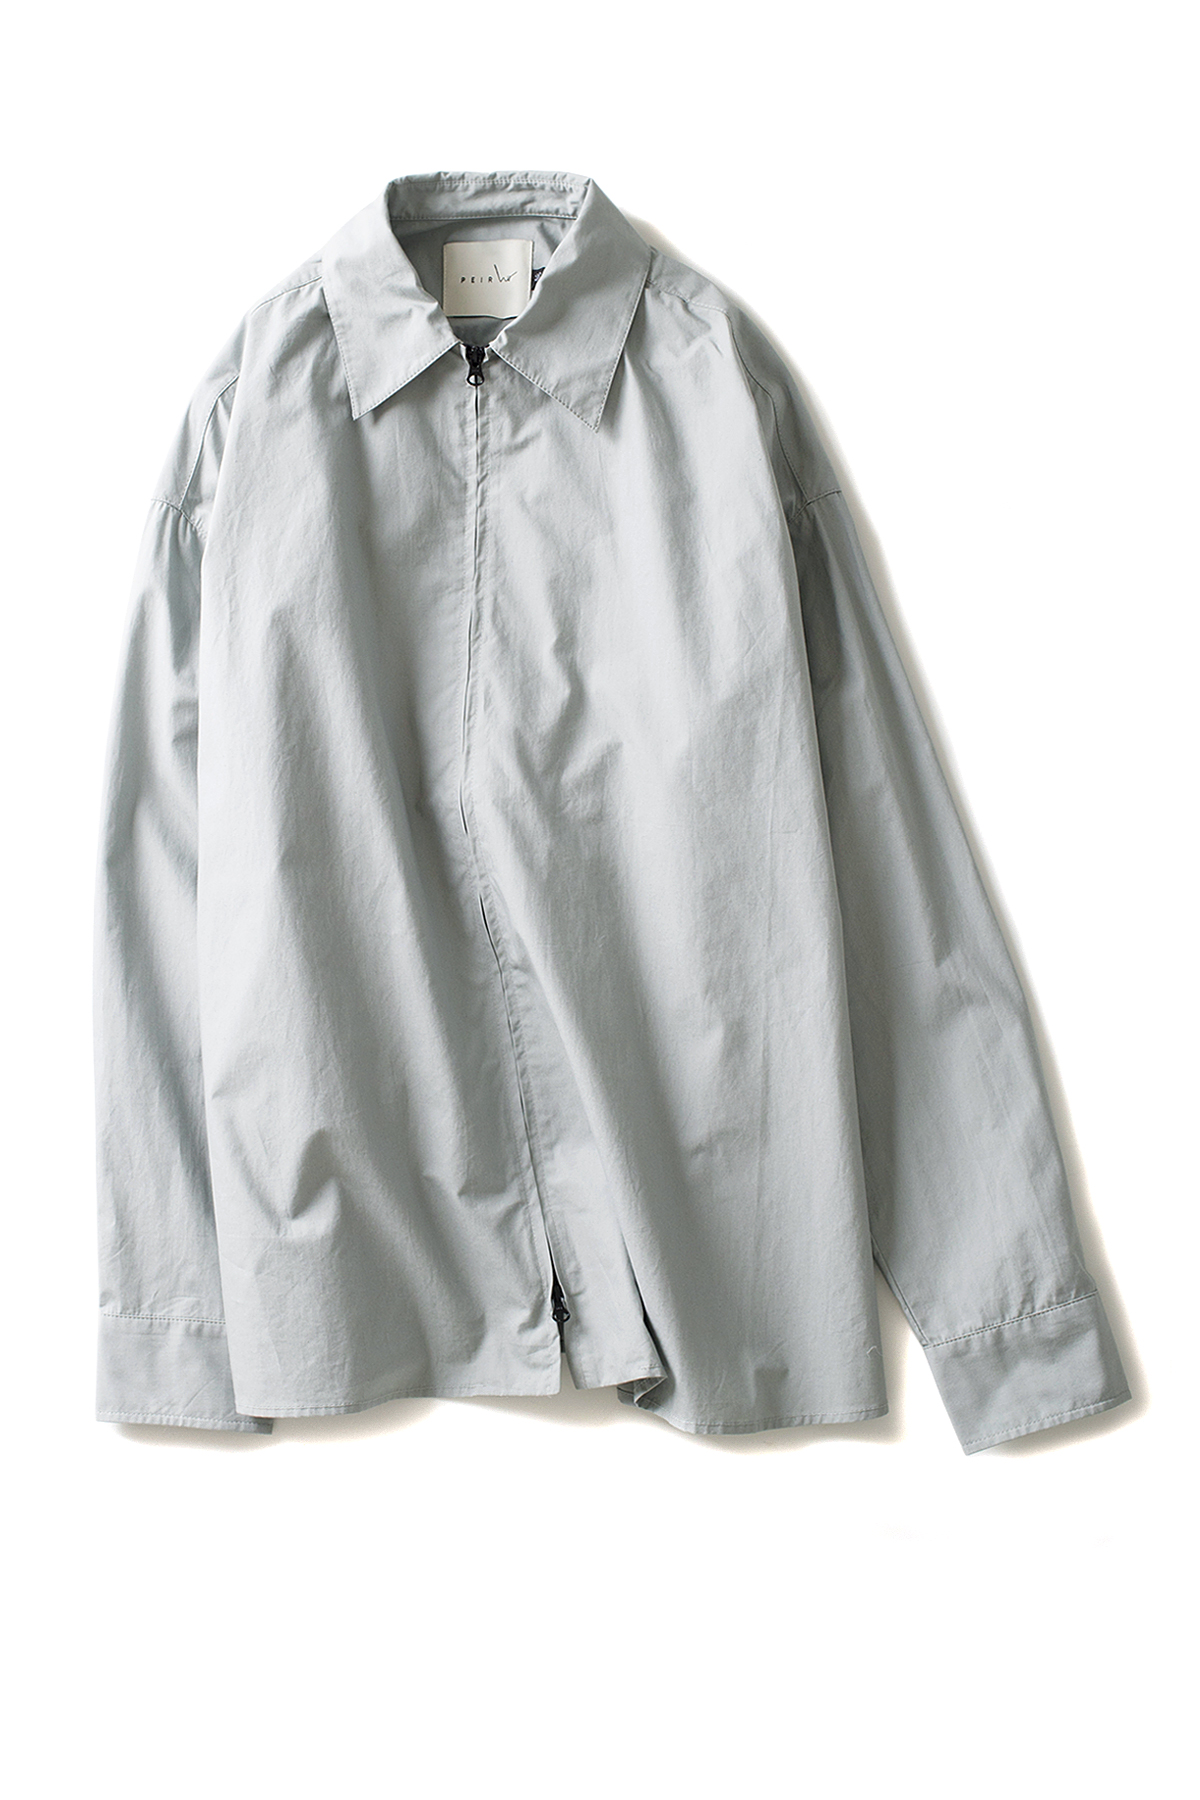 Peir Wu : Zip Front Shirt (Mint)